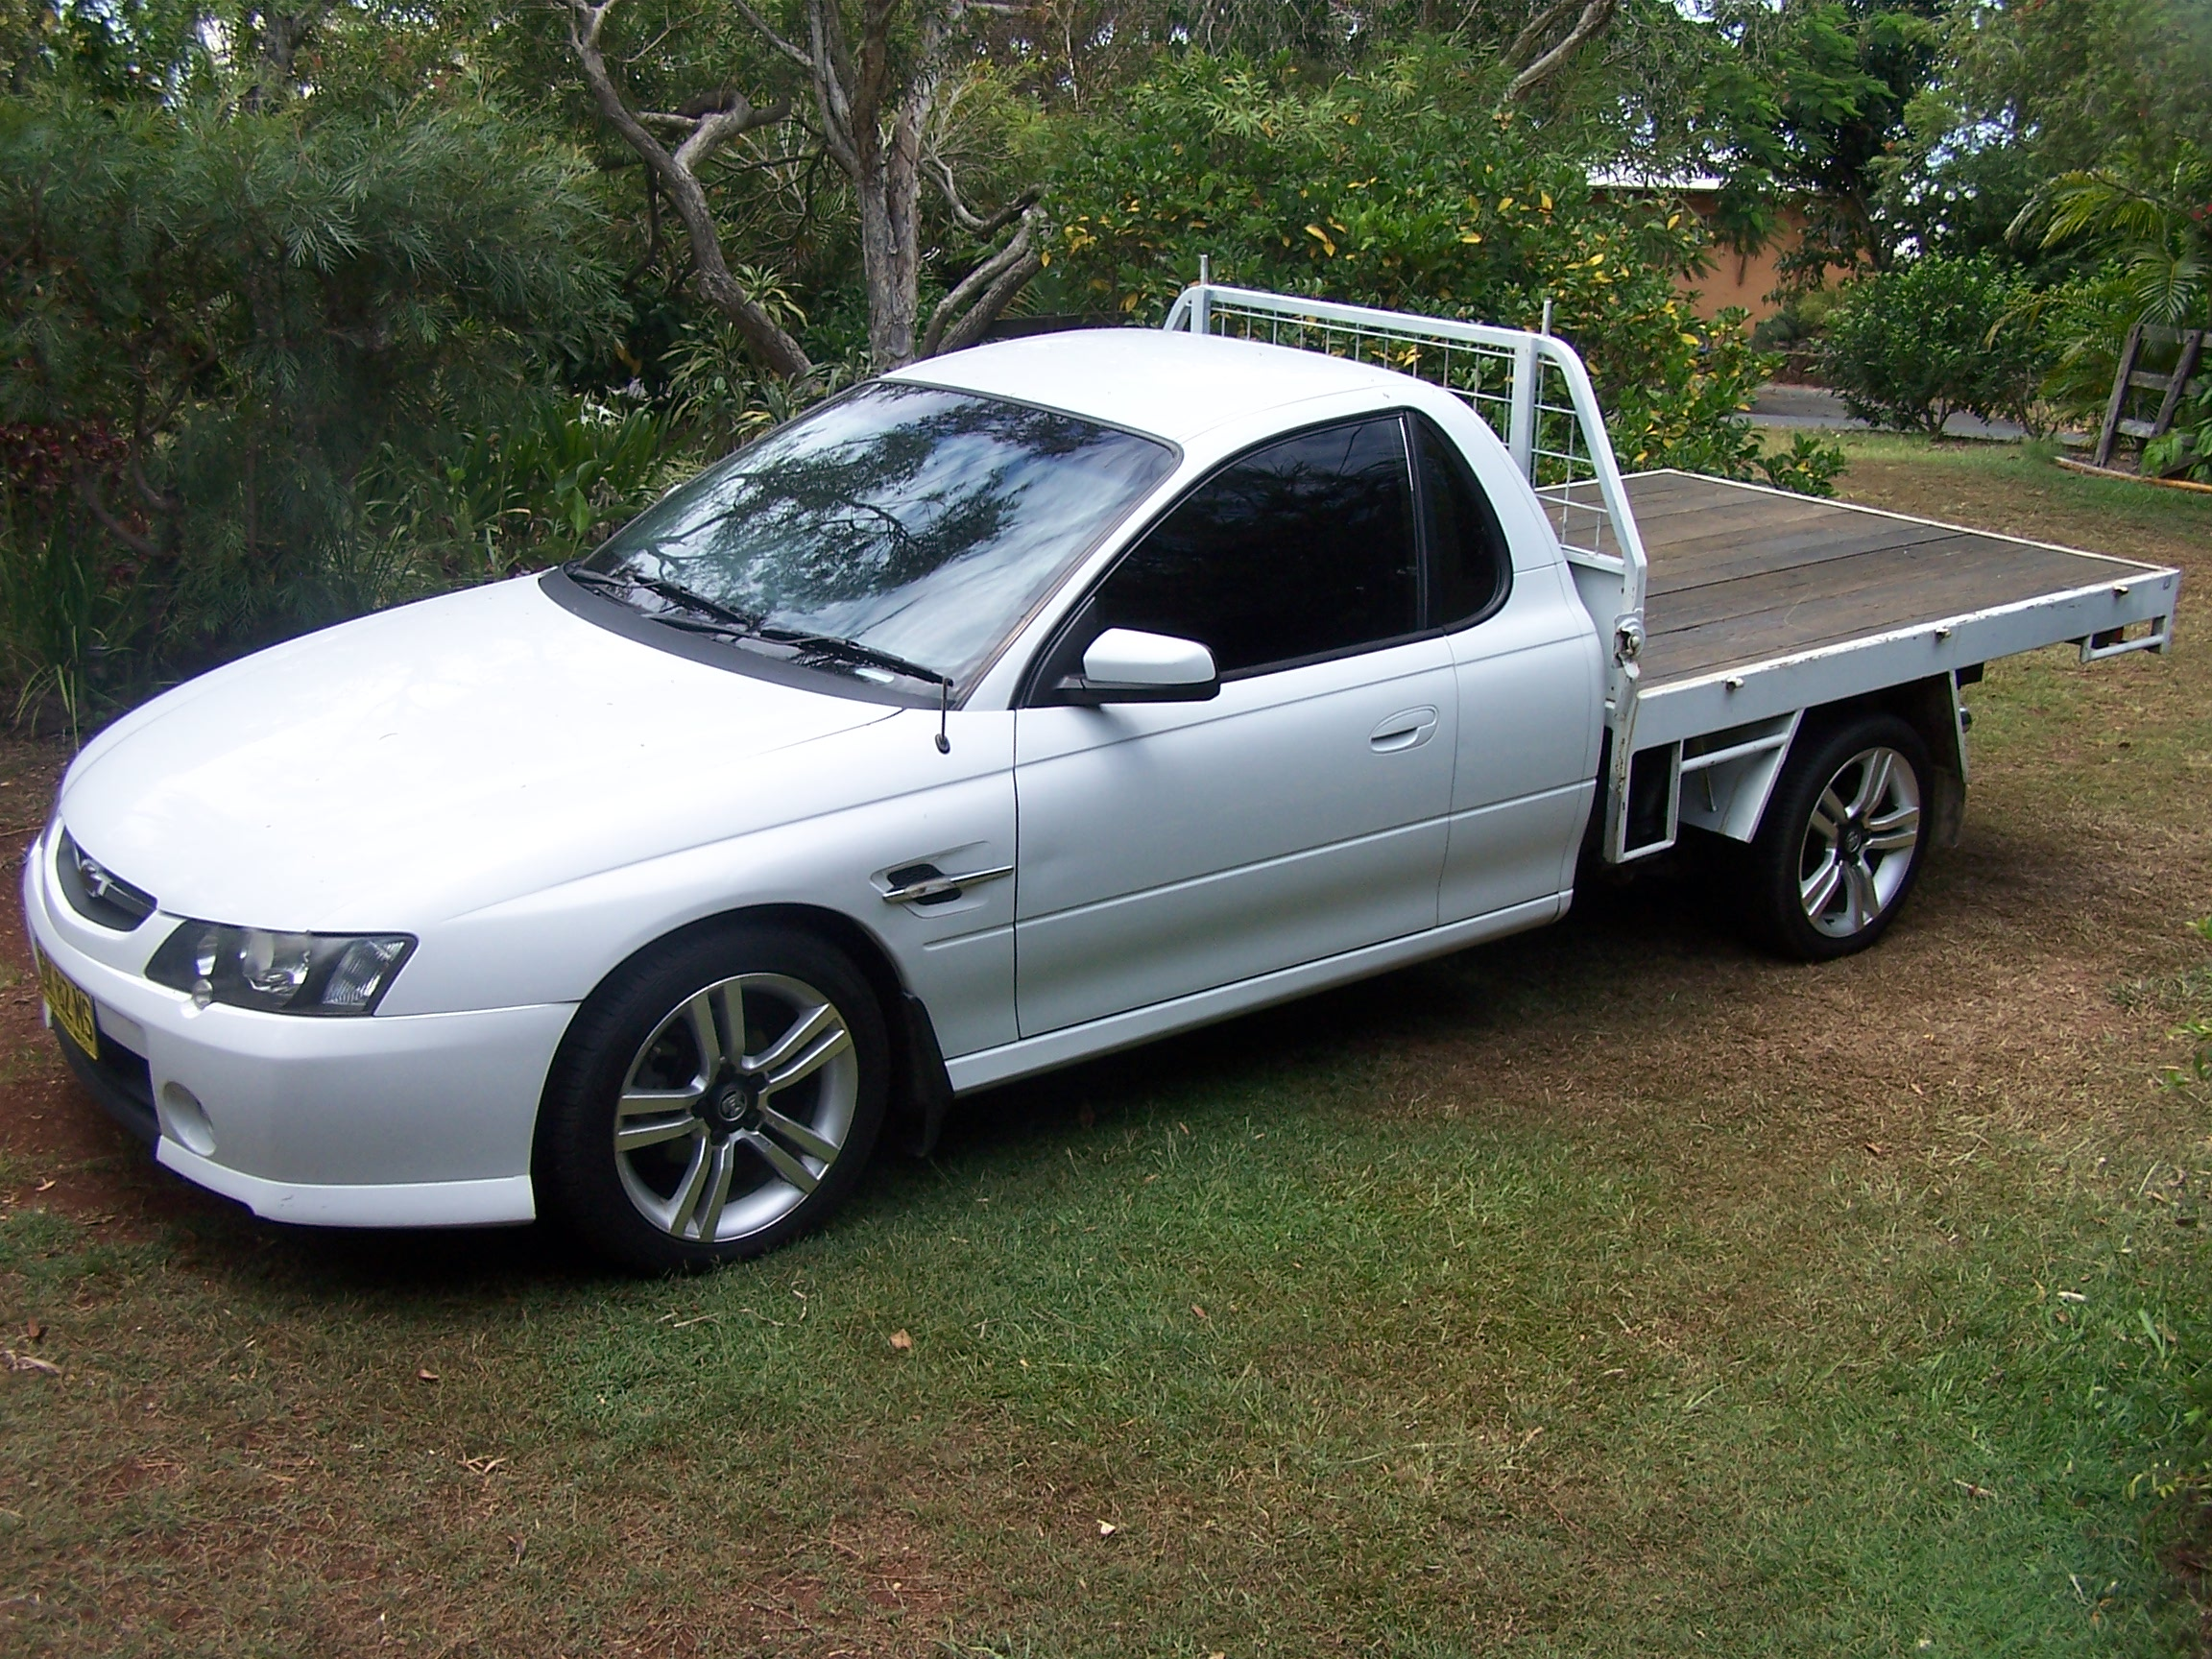 2005 holden vz one tonner cross 6 gallery hd cars wallpaper 2004 holden vz one tonner image collections hd cars wallpaper 2005 holden vz one tonner cross vanachro Gallery